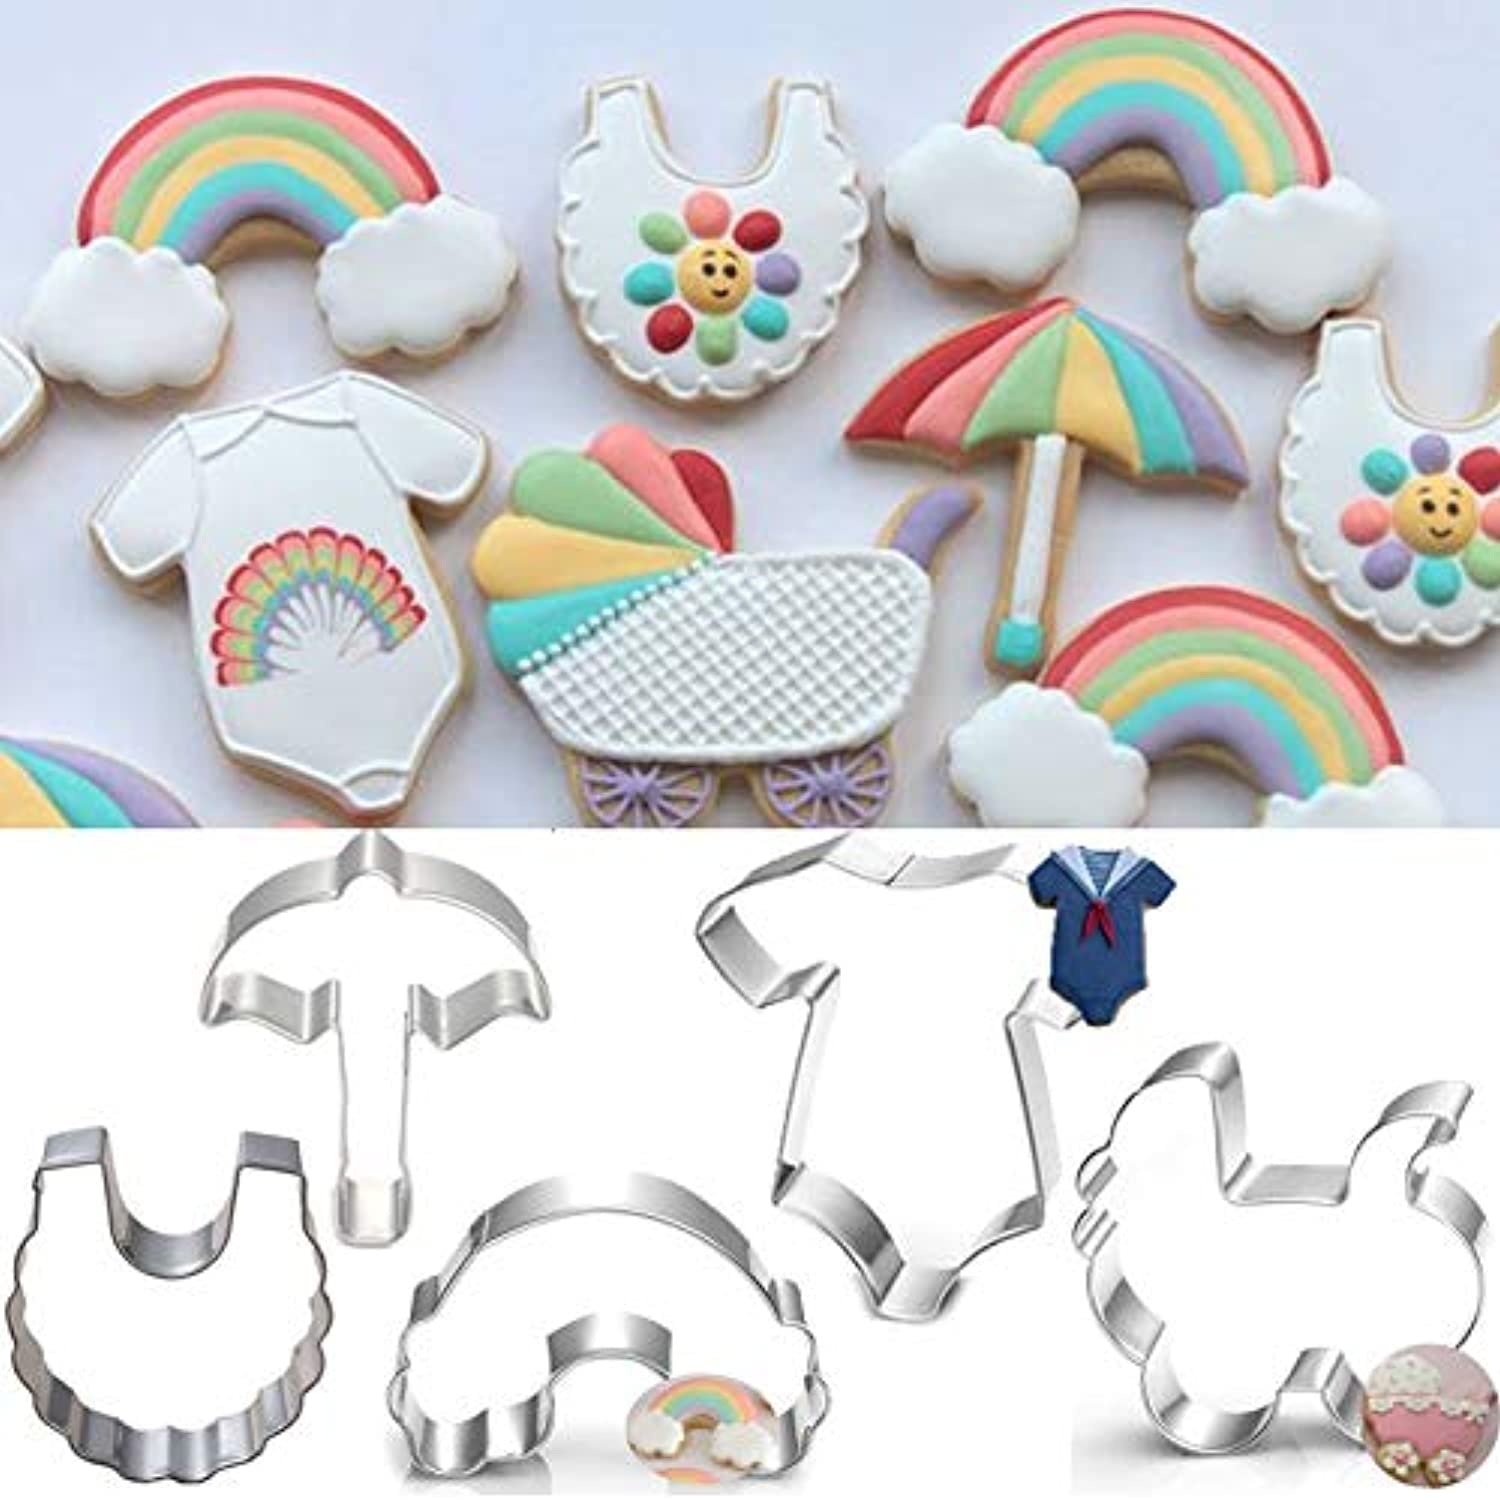 Farmerly 5pcs Patisserie reposteria Bakeware Baby Carriage Rainbow Fondant Cake Decor Tools Metal Cookie Cutter Chocolate Biscuit Mold